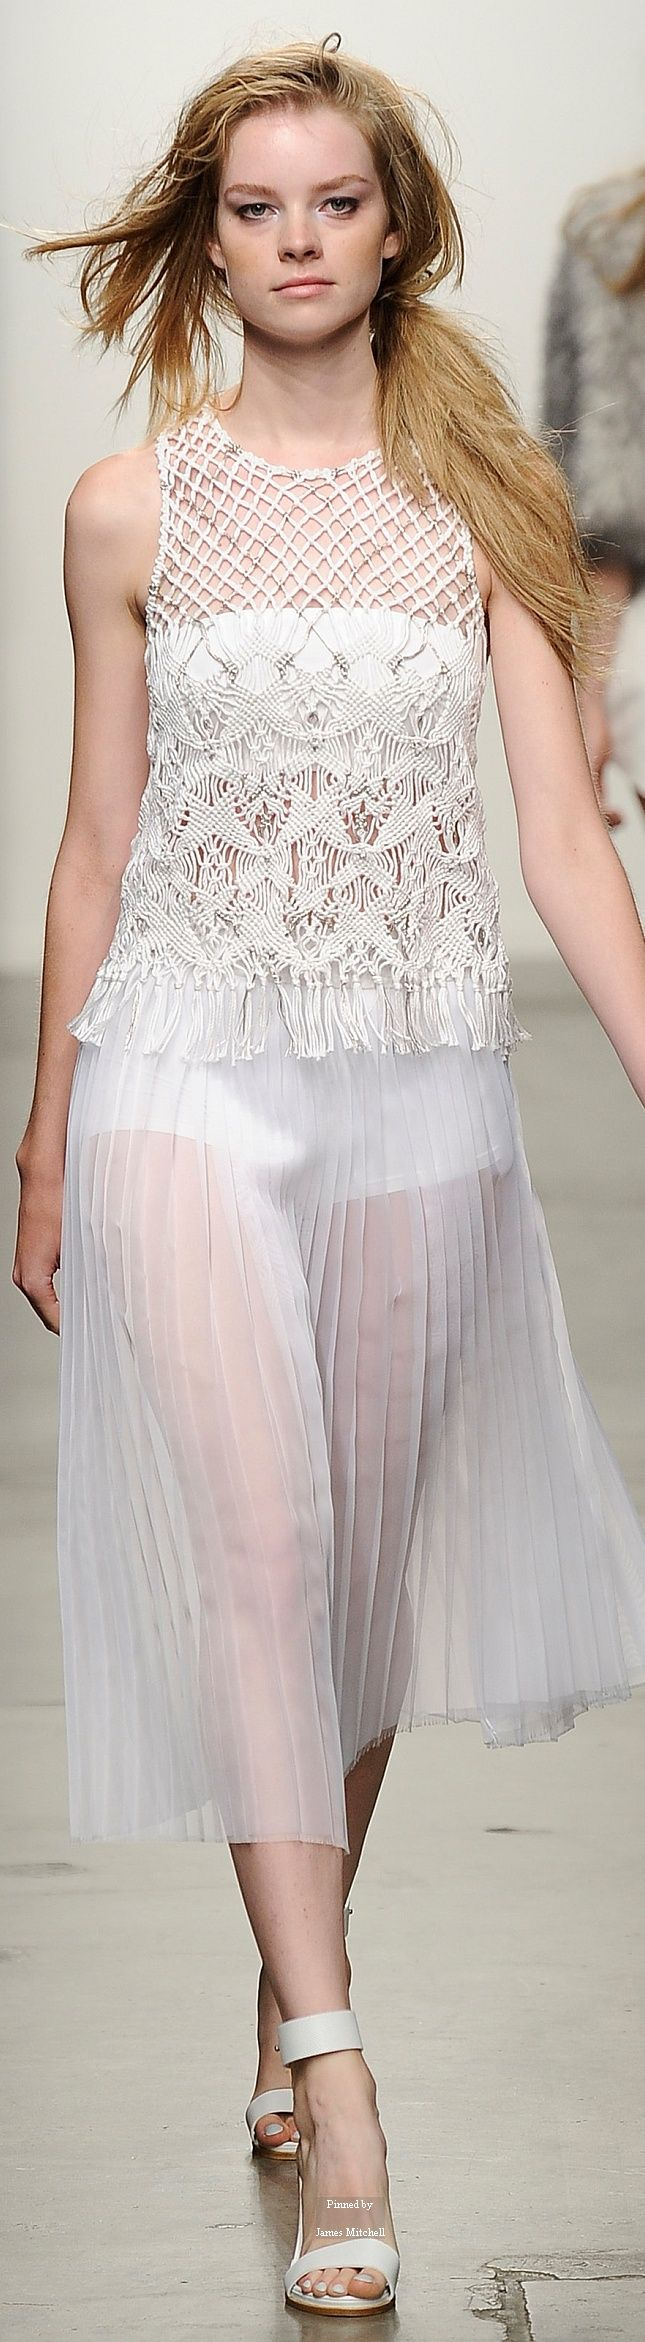 Tess Giberson Spring Summer 2015 Ready-To-Wear collection